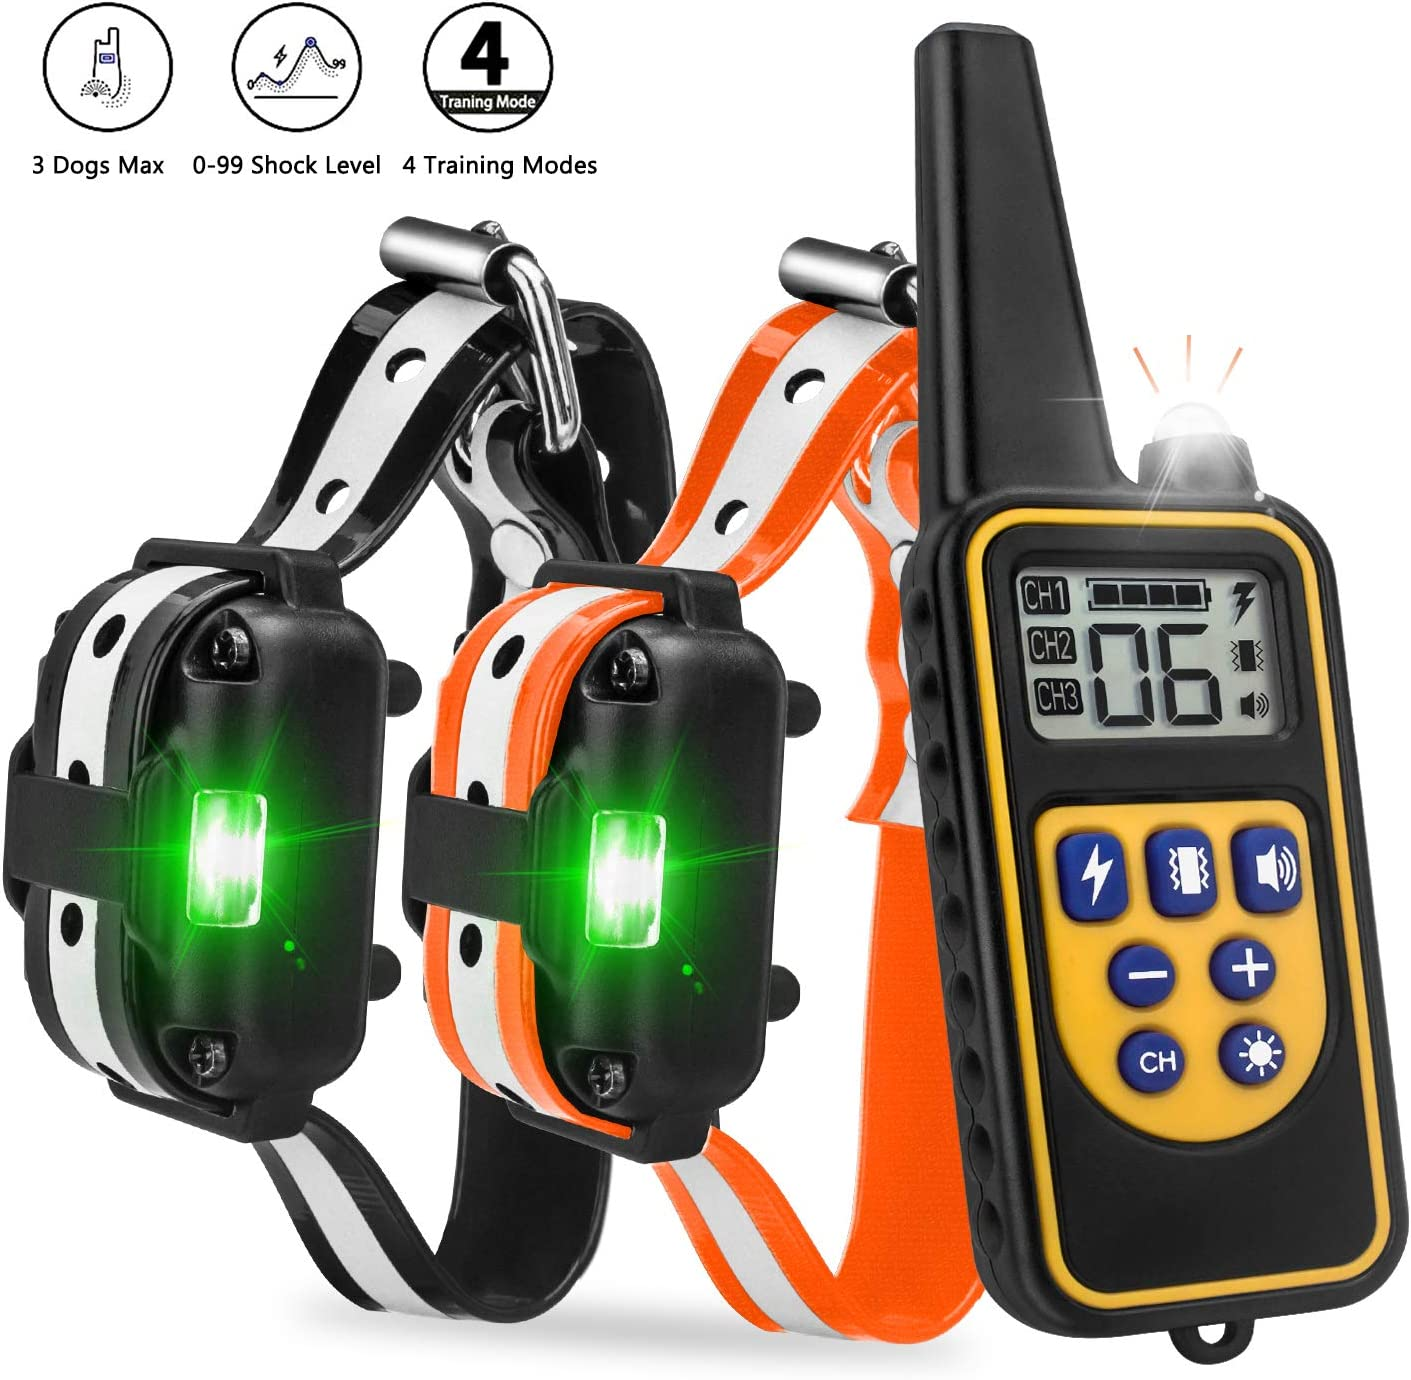 Beinhome Dog Training Collar with Remote 2 Dogs Reflective Strap Waterproof Rechargeable Receiver Collars Up to 2600FT Remote Range with Light Mode, Beep Vibration Shock